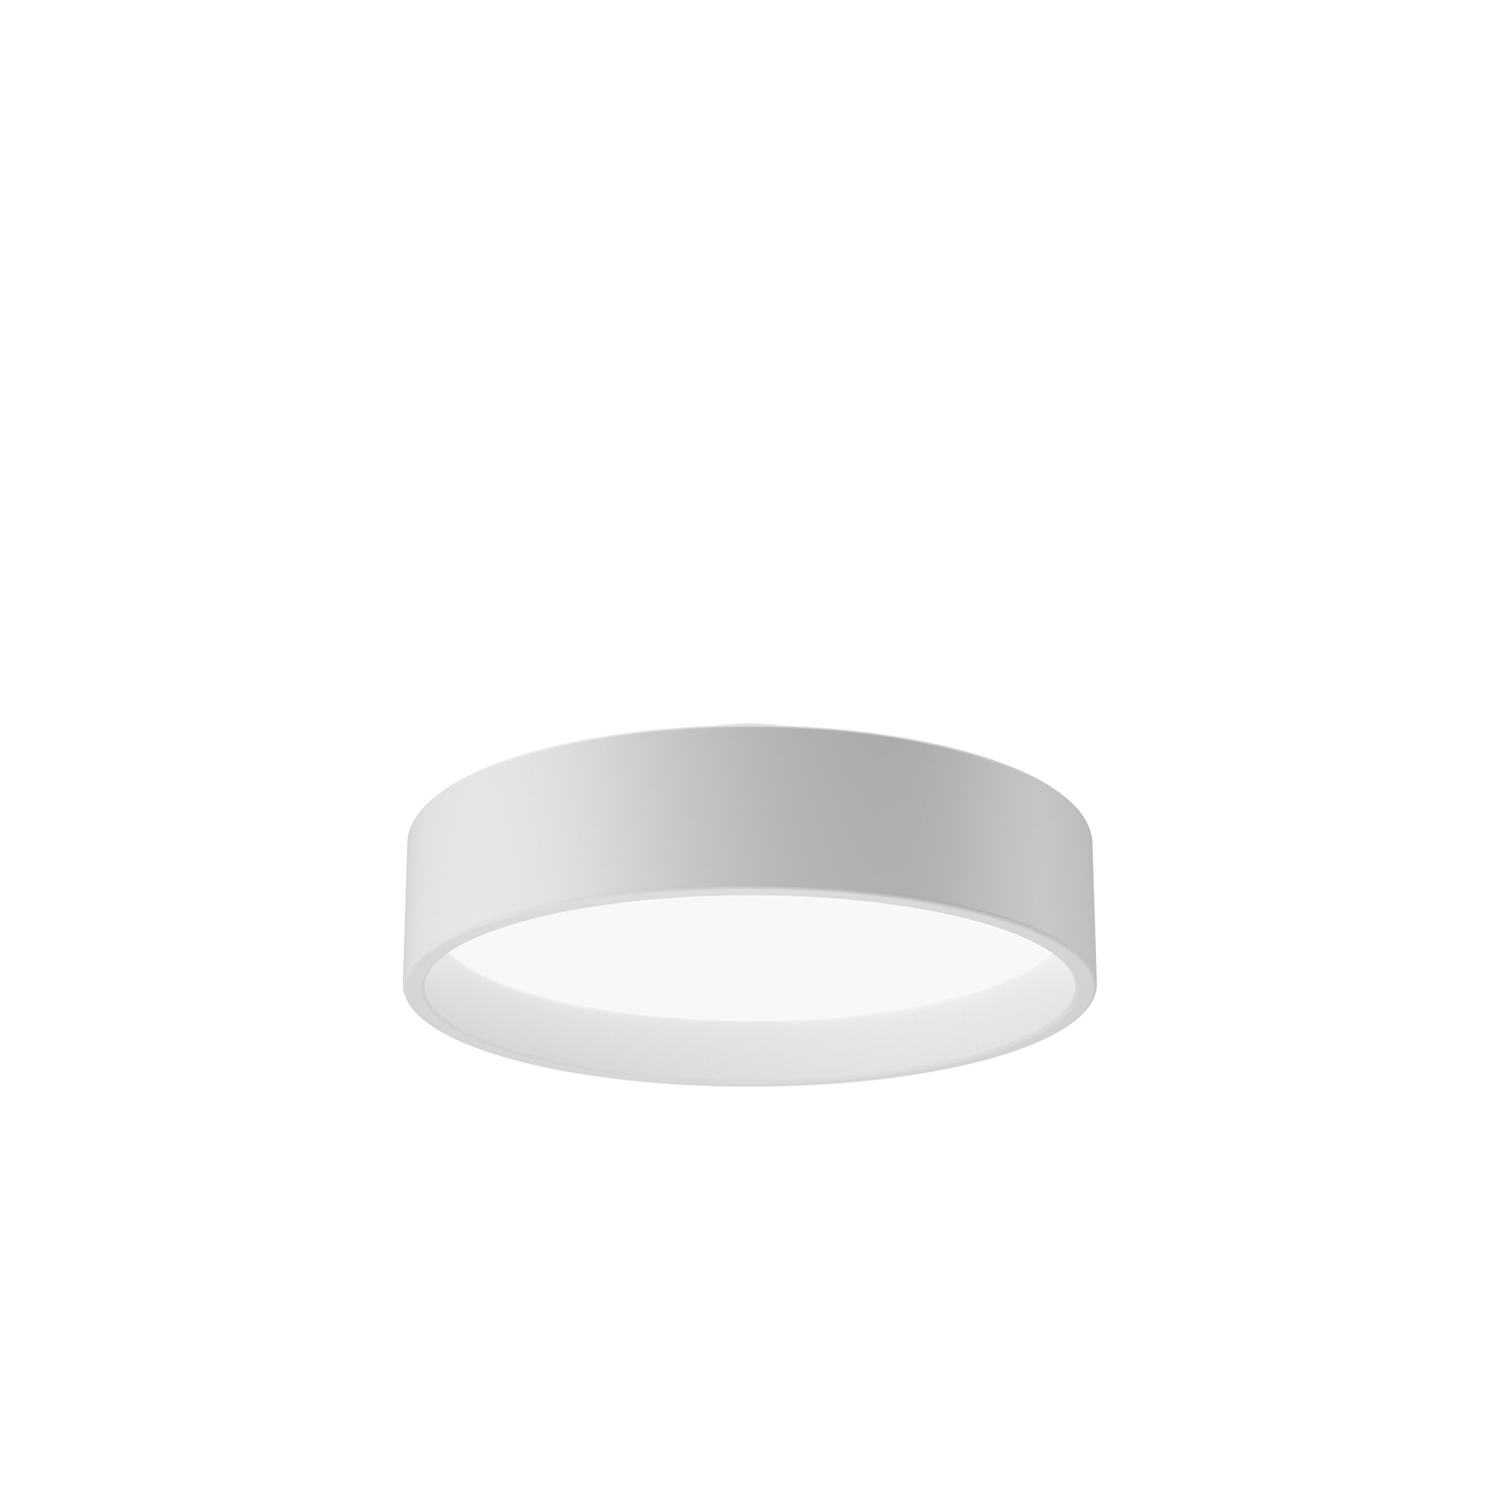 LP Circle Ceiling Light - The fixture emits diffuse light via a high-efficiency acrylic diffuser. The diffuser, which is encircled by a voluminous coloured or white ring, is hidden when viewed from low angles. Angling the inner side of the reflector ring 5° creates comfortable and decorative graduation of the light from the diffuser. The luminaire 'floats' 34 mm below the ceiling, creating a visual lightness. | Matter of Stuff